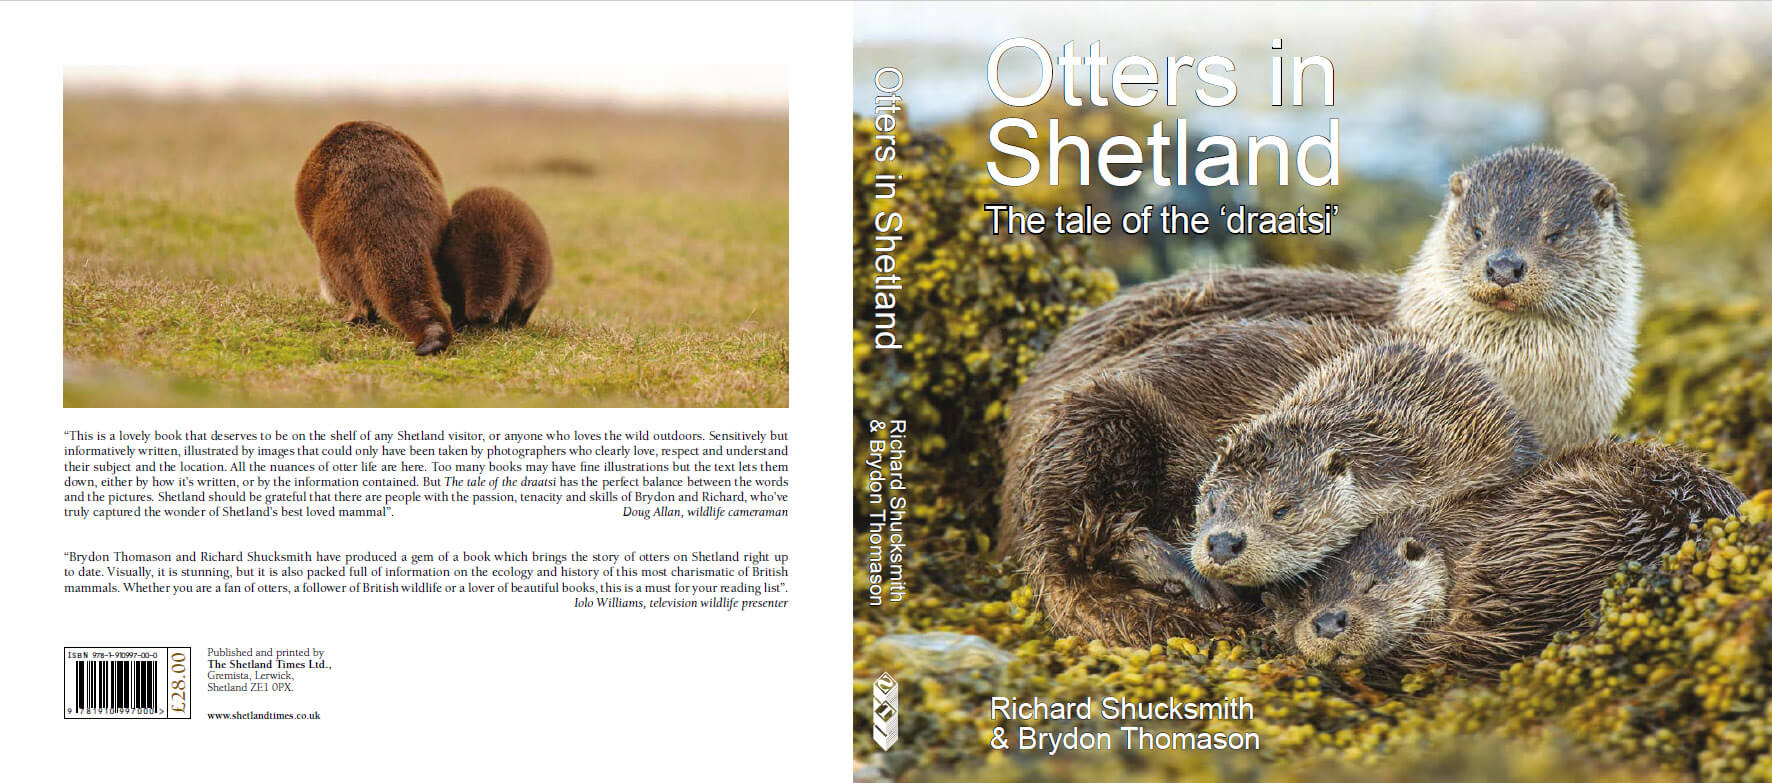 Shetland otters, Otter photography, Otters in Shetland, Shetland Isles, Otters otter, Lutra lutra, otter book, Shetland otter photography, Shetland otter